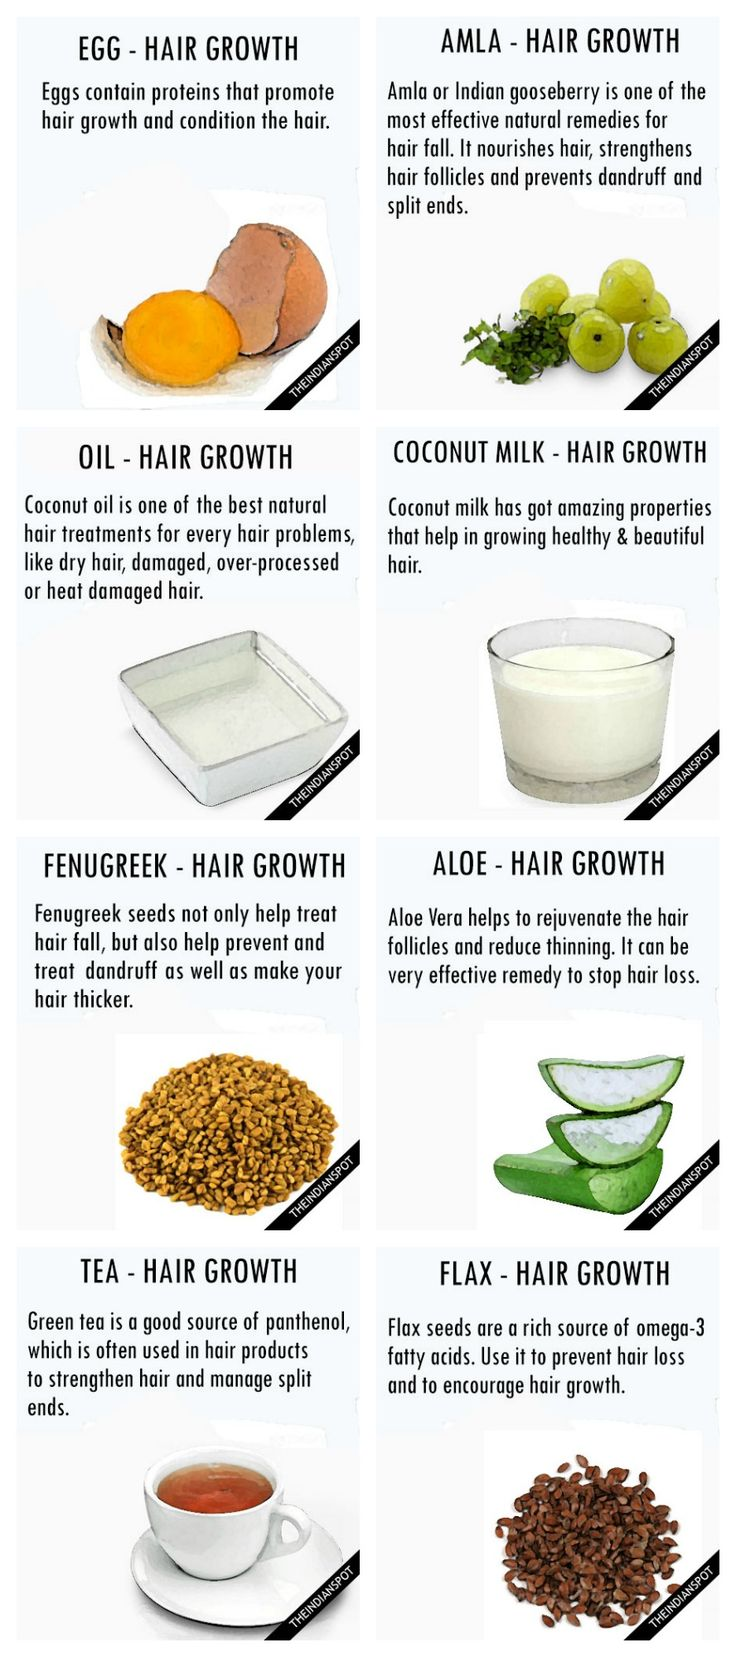 TOP NATURAL HAIR GROWTH REMEDIES                                                                                                                                                                                 More